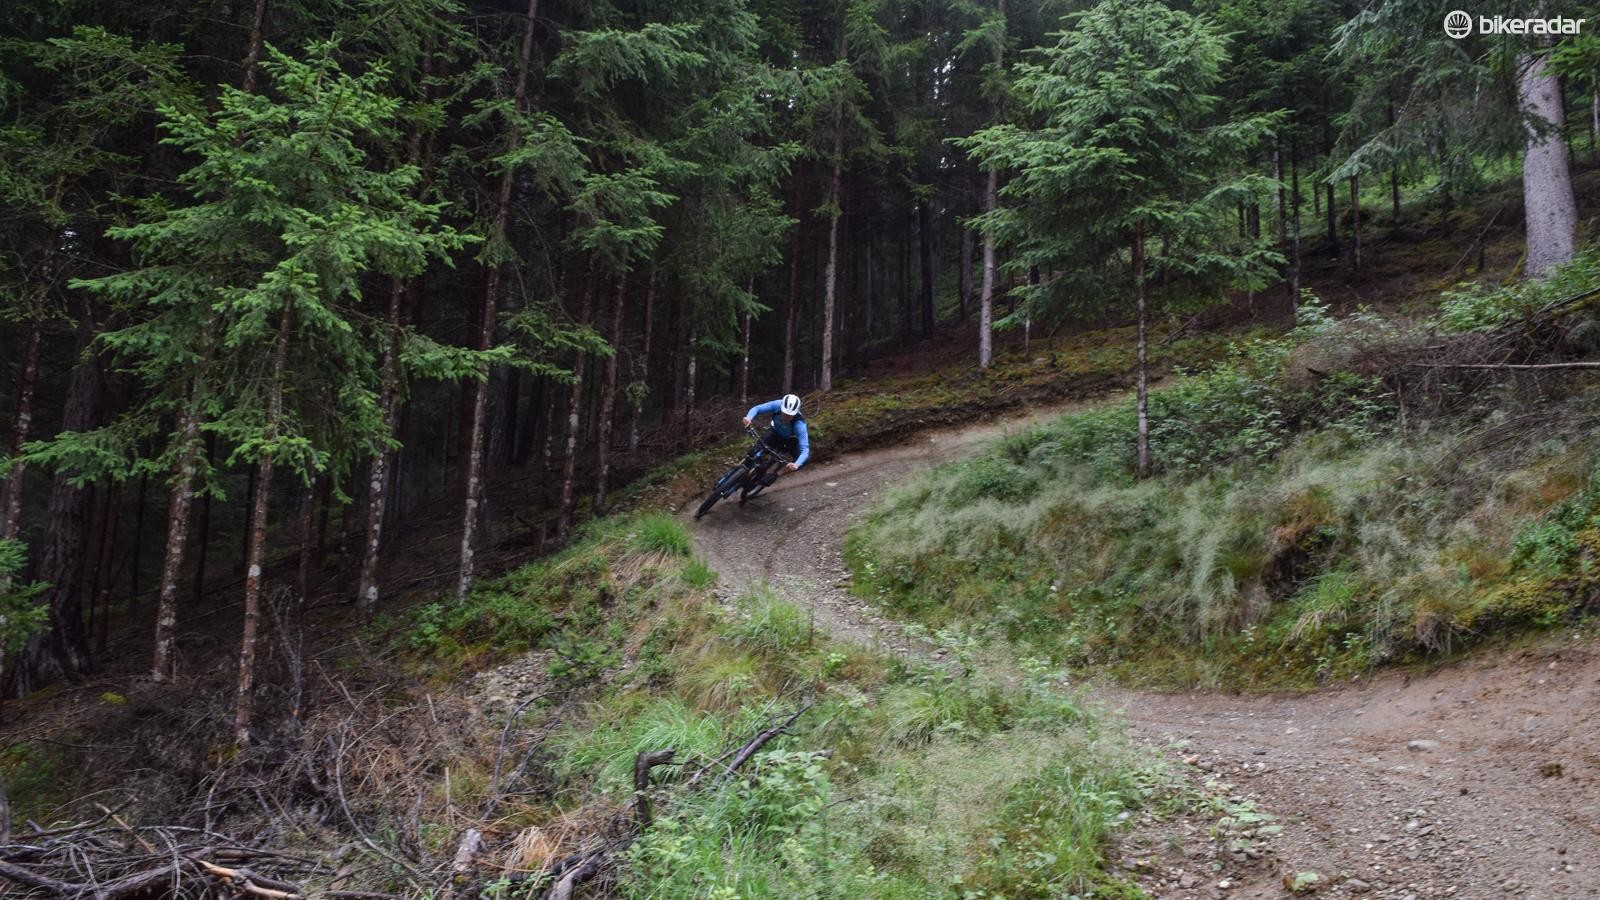 Plenty of support from the back end means no sinking feeling as you rail berms